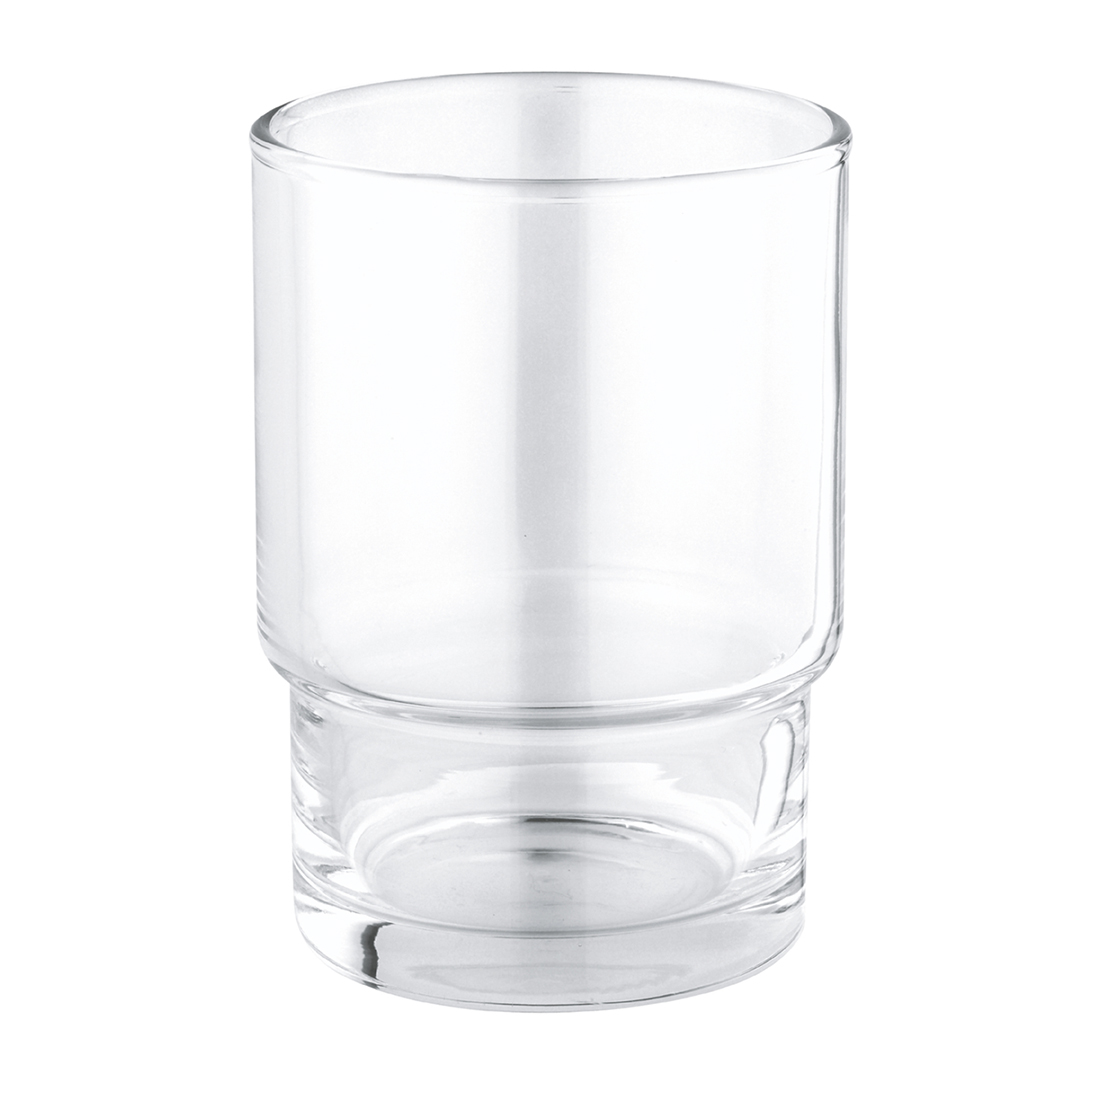 Grohe 40372001 Essentials Crystal Glass